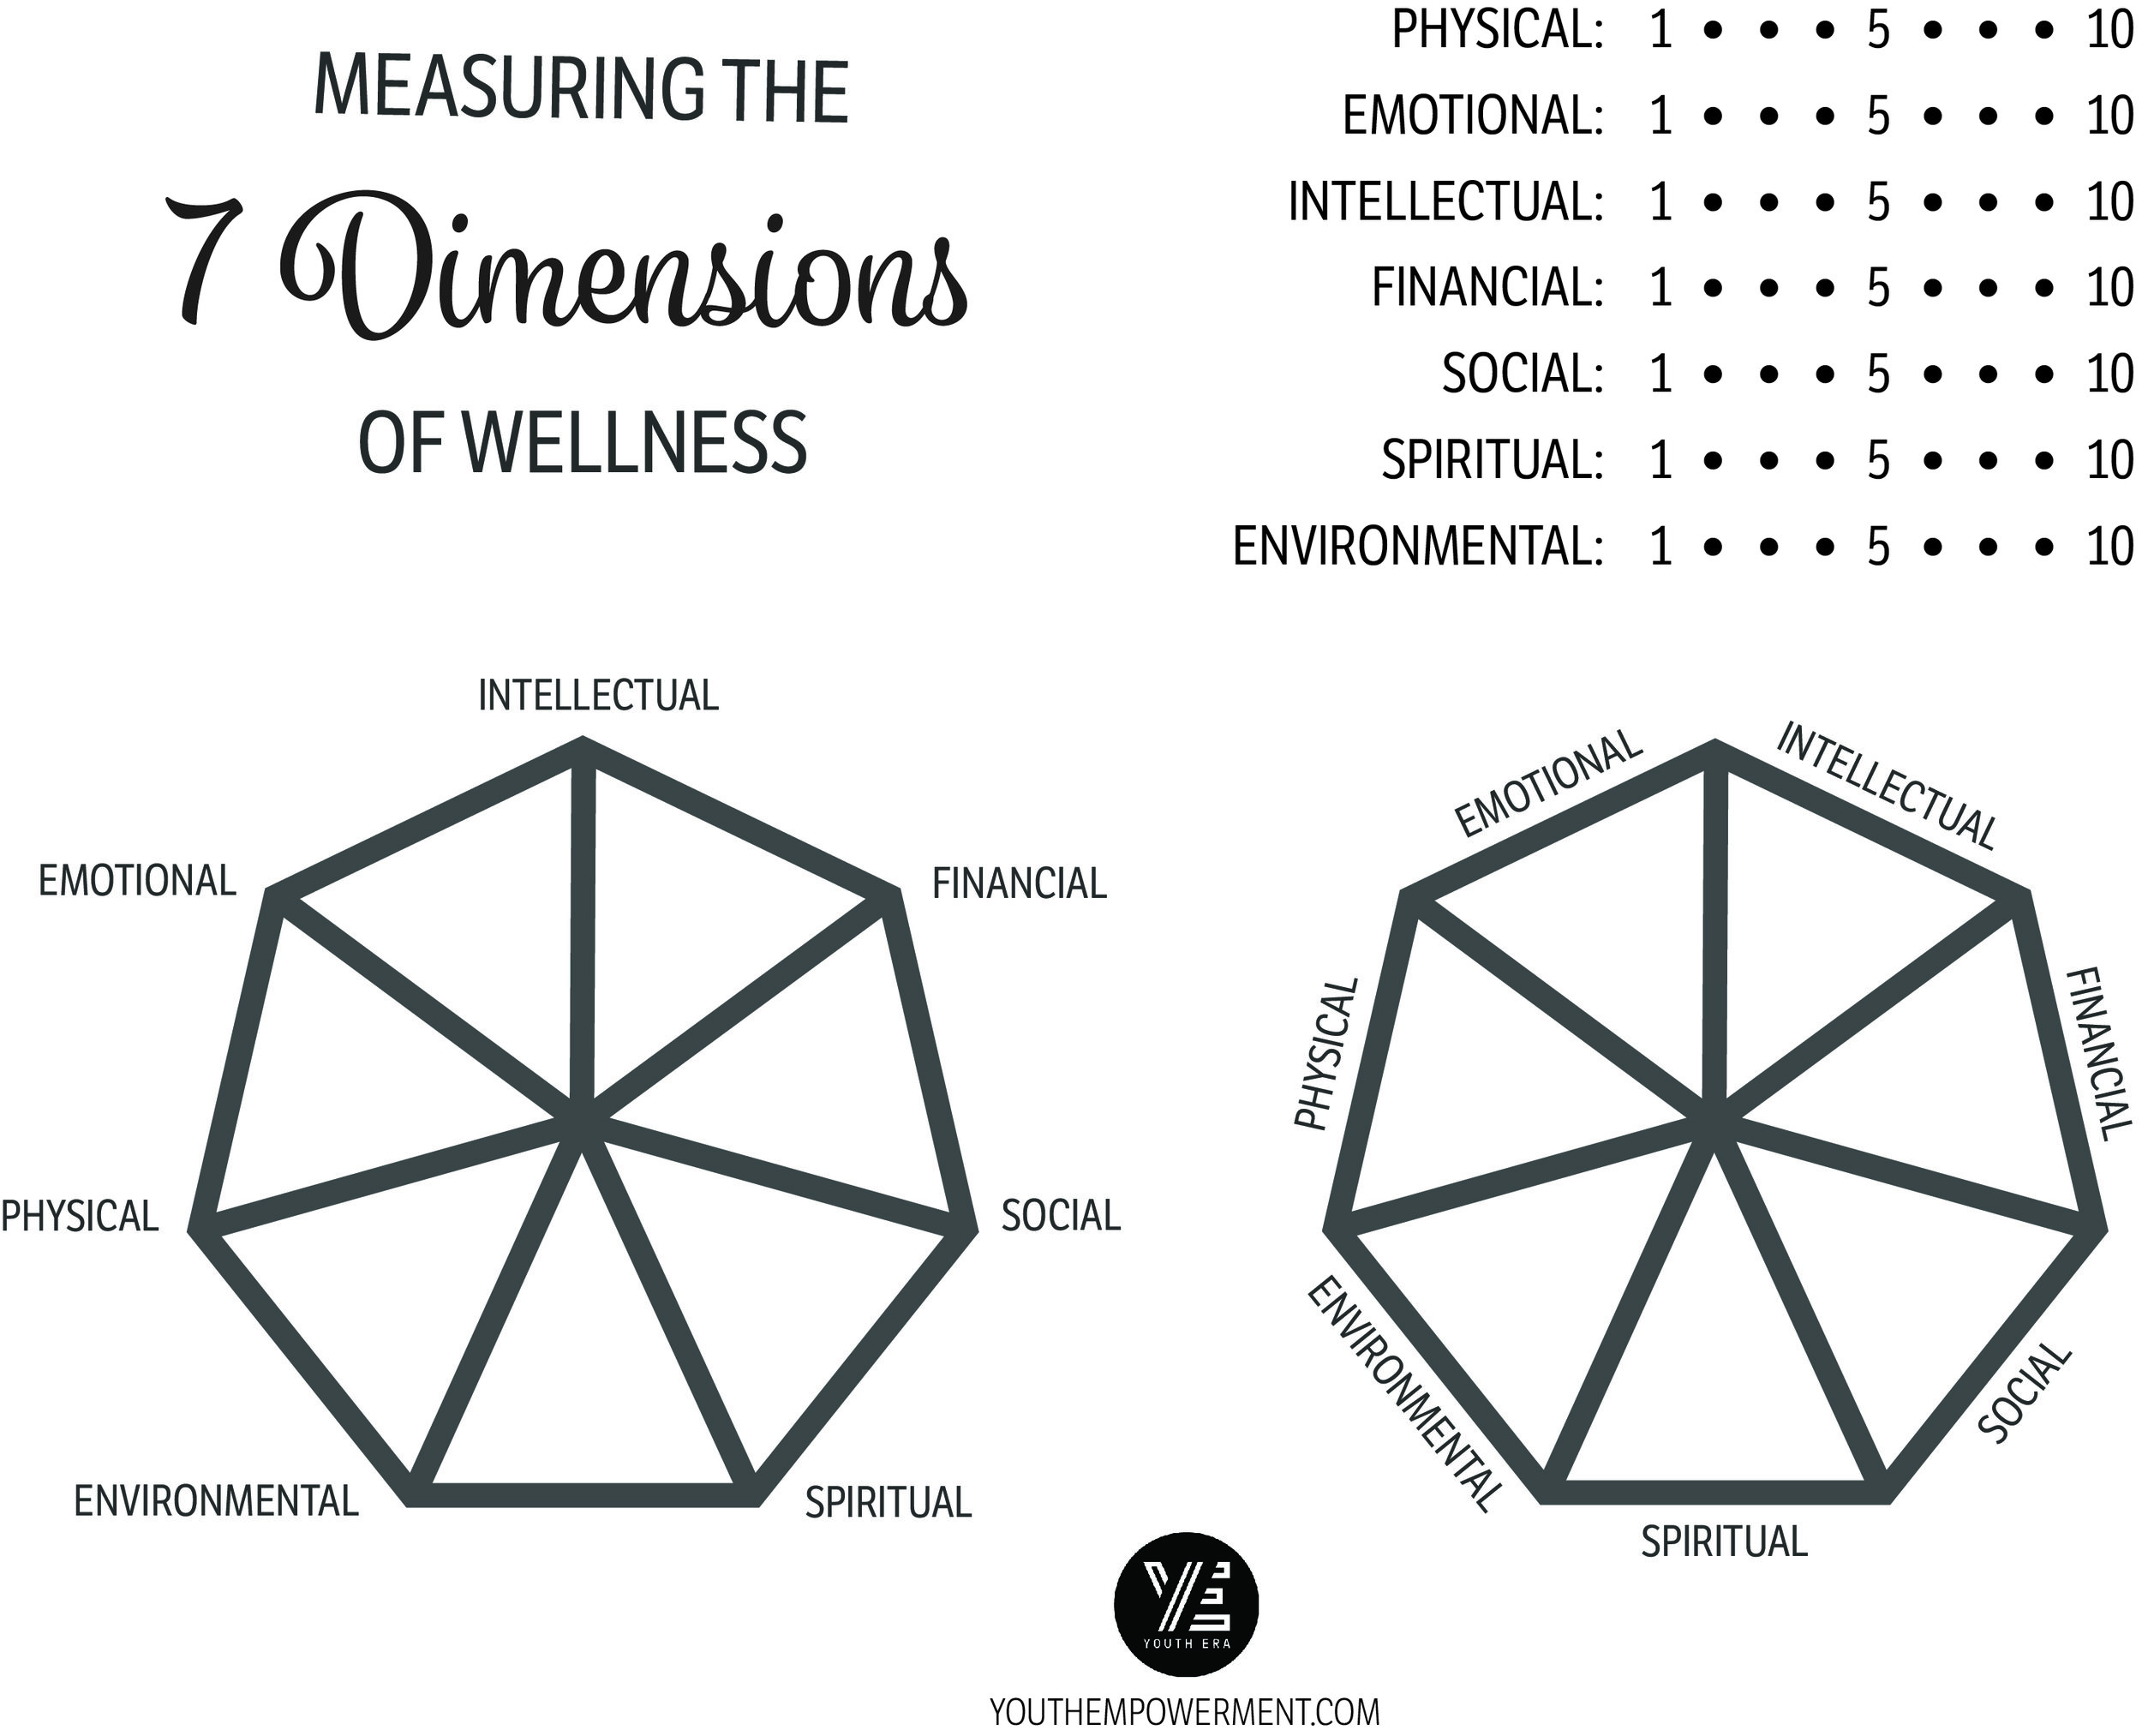 Measuring the 7 Dimensions of Wellness Printable.jpg